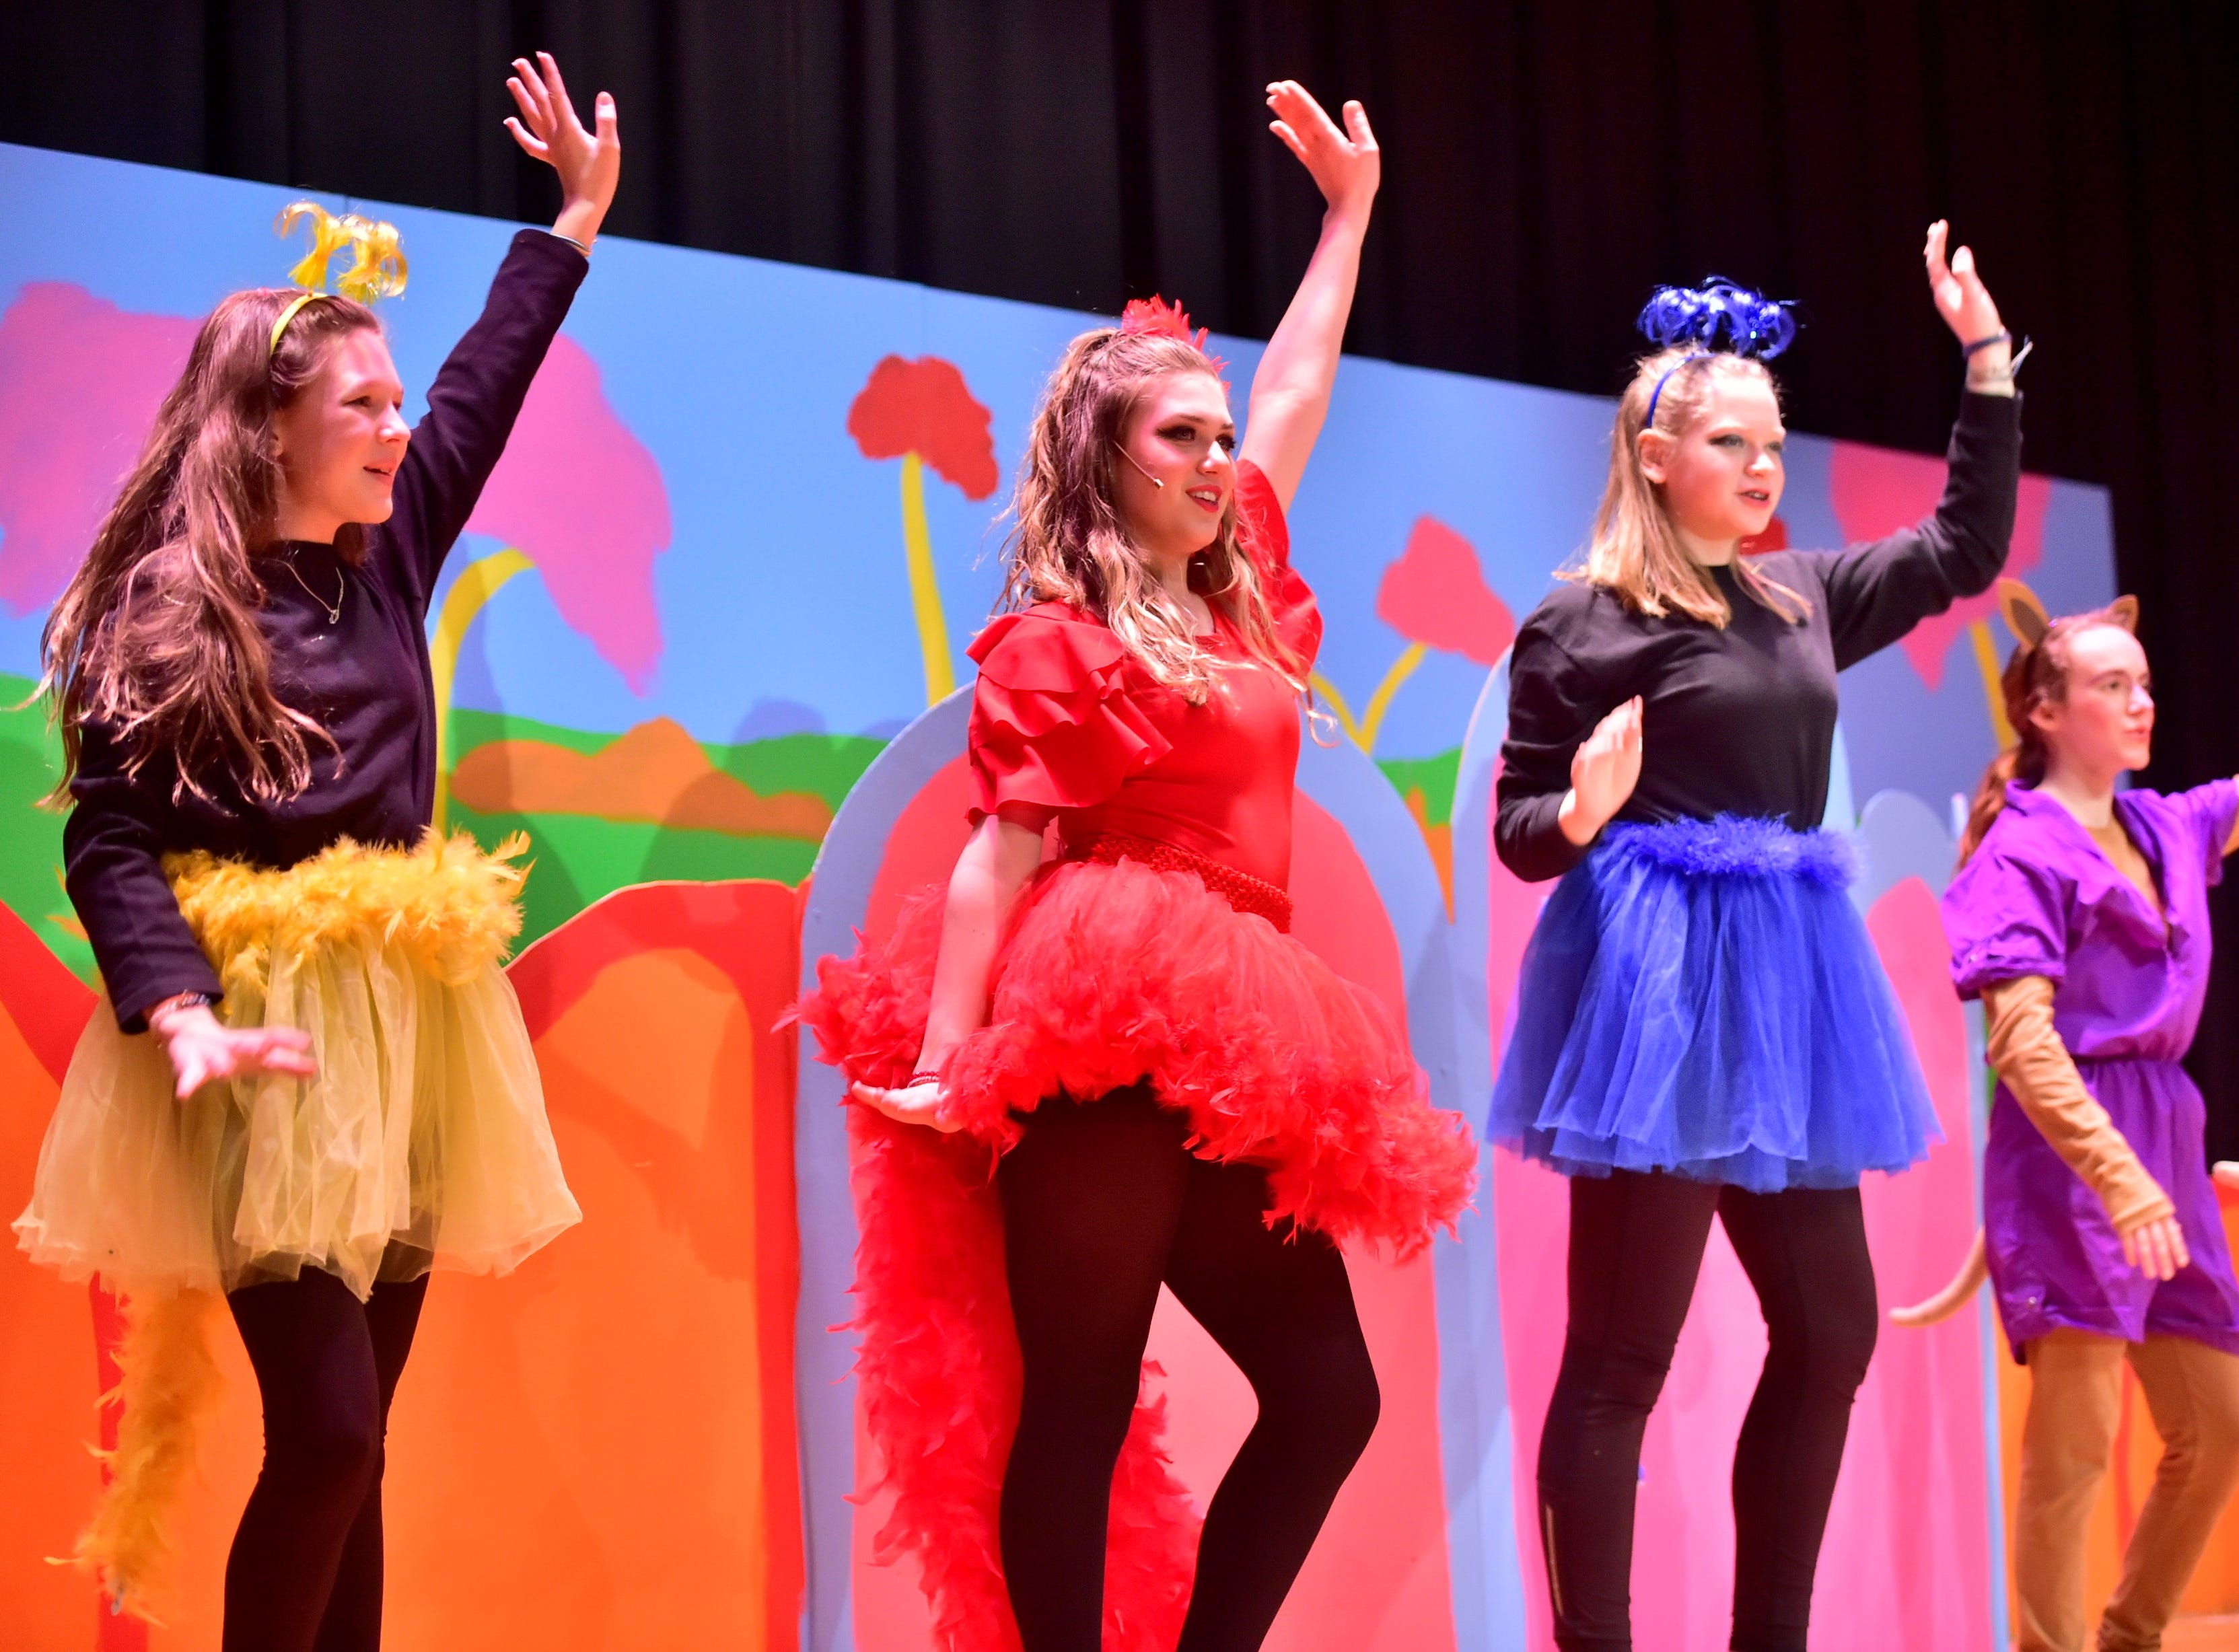 "Zoe Ward, Zoey Wolfe and Caroline Dagnes portray the Bird Girls (with Wolfe as Amazing Mayzie) in a scene in ""Seussical Jr."" during dress rehearsal on Feb. 19, 2019. Pictured in the background is Norah Kinton, playing Baby Kangaroo.  Chambersburg Area Middle School South Drama Club will present the production at 7 p.m. Friday and Saturday, Feb. 22 and 23, and 2 p.m. Saturday and Sunday, Feb. 23 and 24, in the CAMS South auditorium. For tickets, $8, go to www.showtix4u.com and look up CAMS South Seussical."